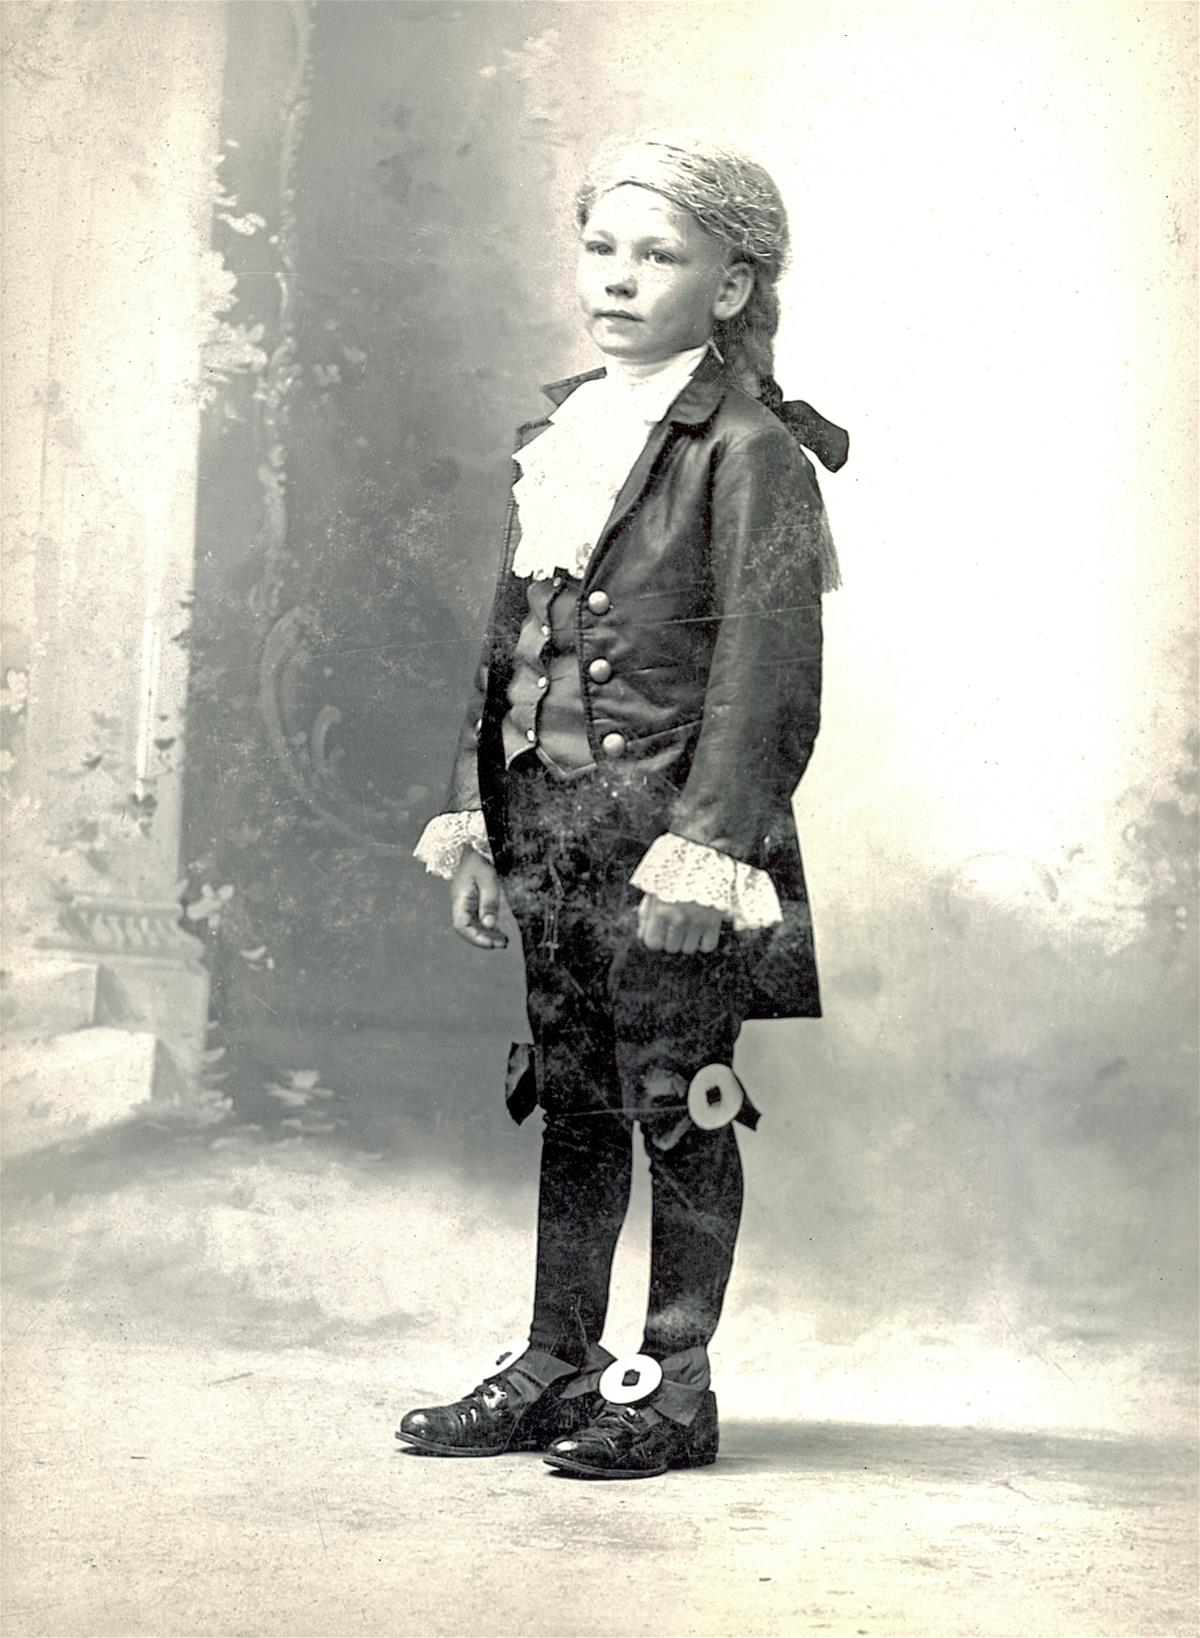 A portrait of Arnold Beckman as a child.